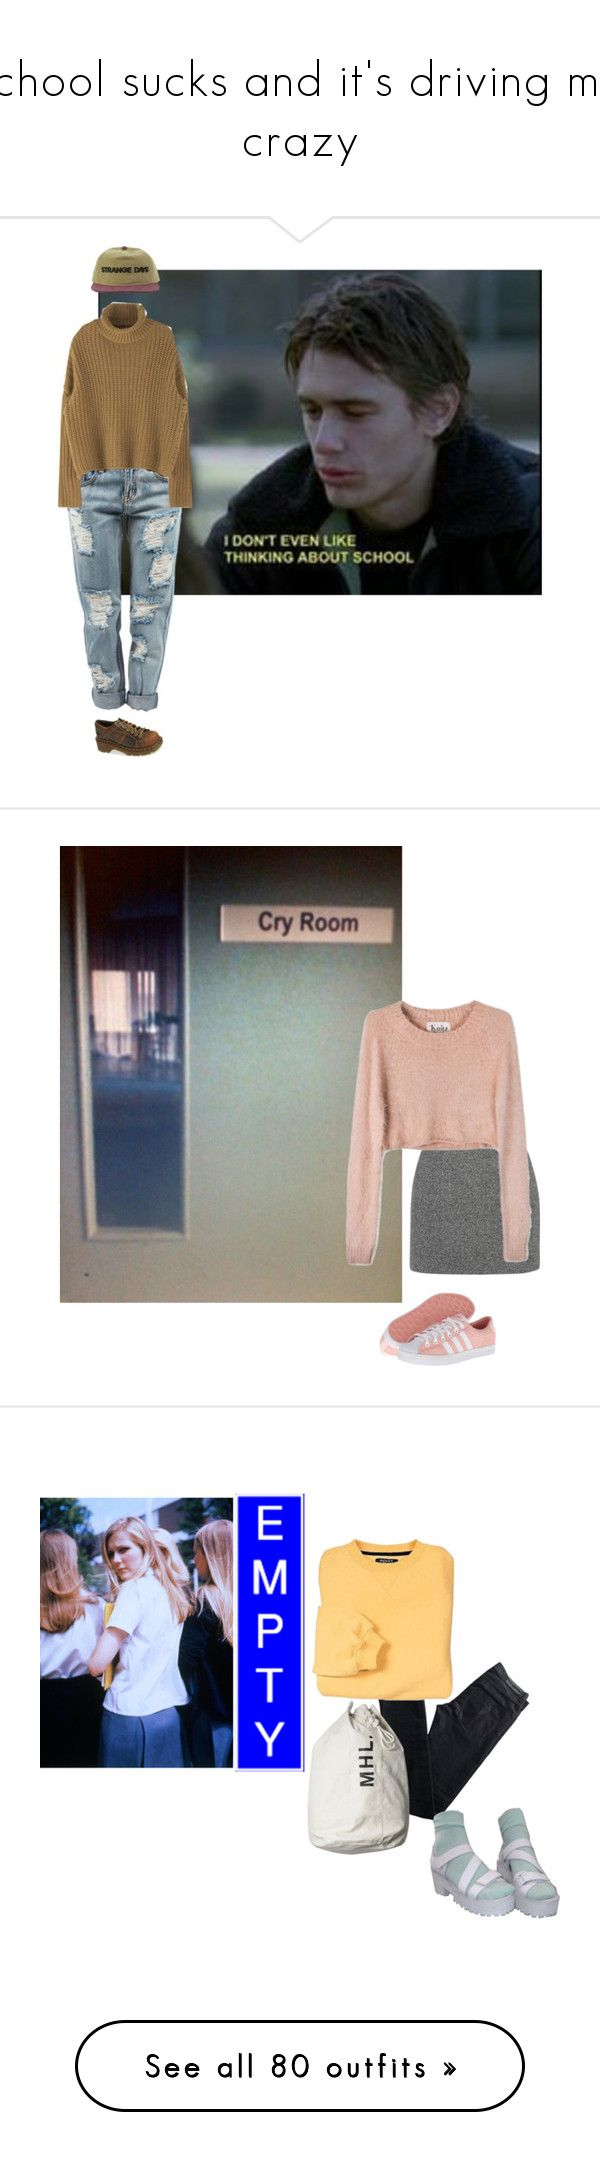 """""""school sucks and it's driving me crazy"""" by flowertattoo ❤ liked on Polyvore featuring school, tired, OneTeaspoon, Dr. Martens, T By Alexander Wang, For Love & Lemons, adidas Originals, Karl Lagerfeld, Pier 1 Imports and Rena Rowan"""